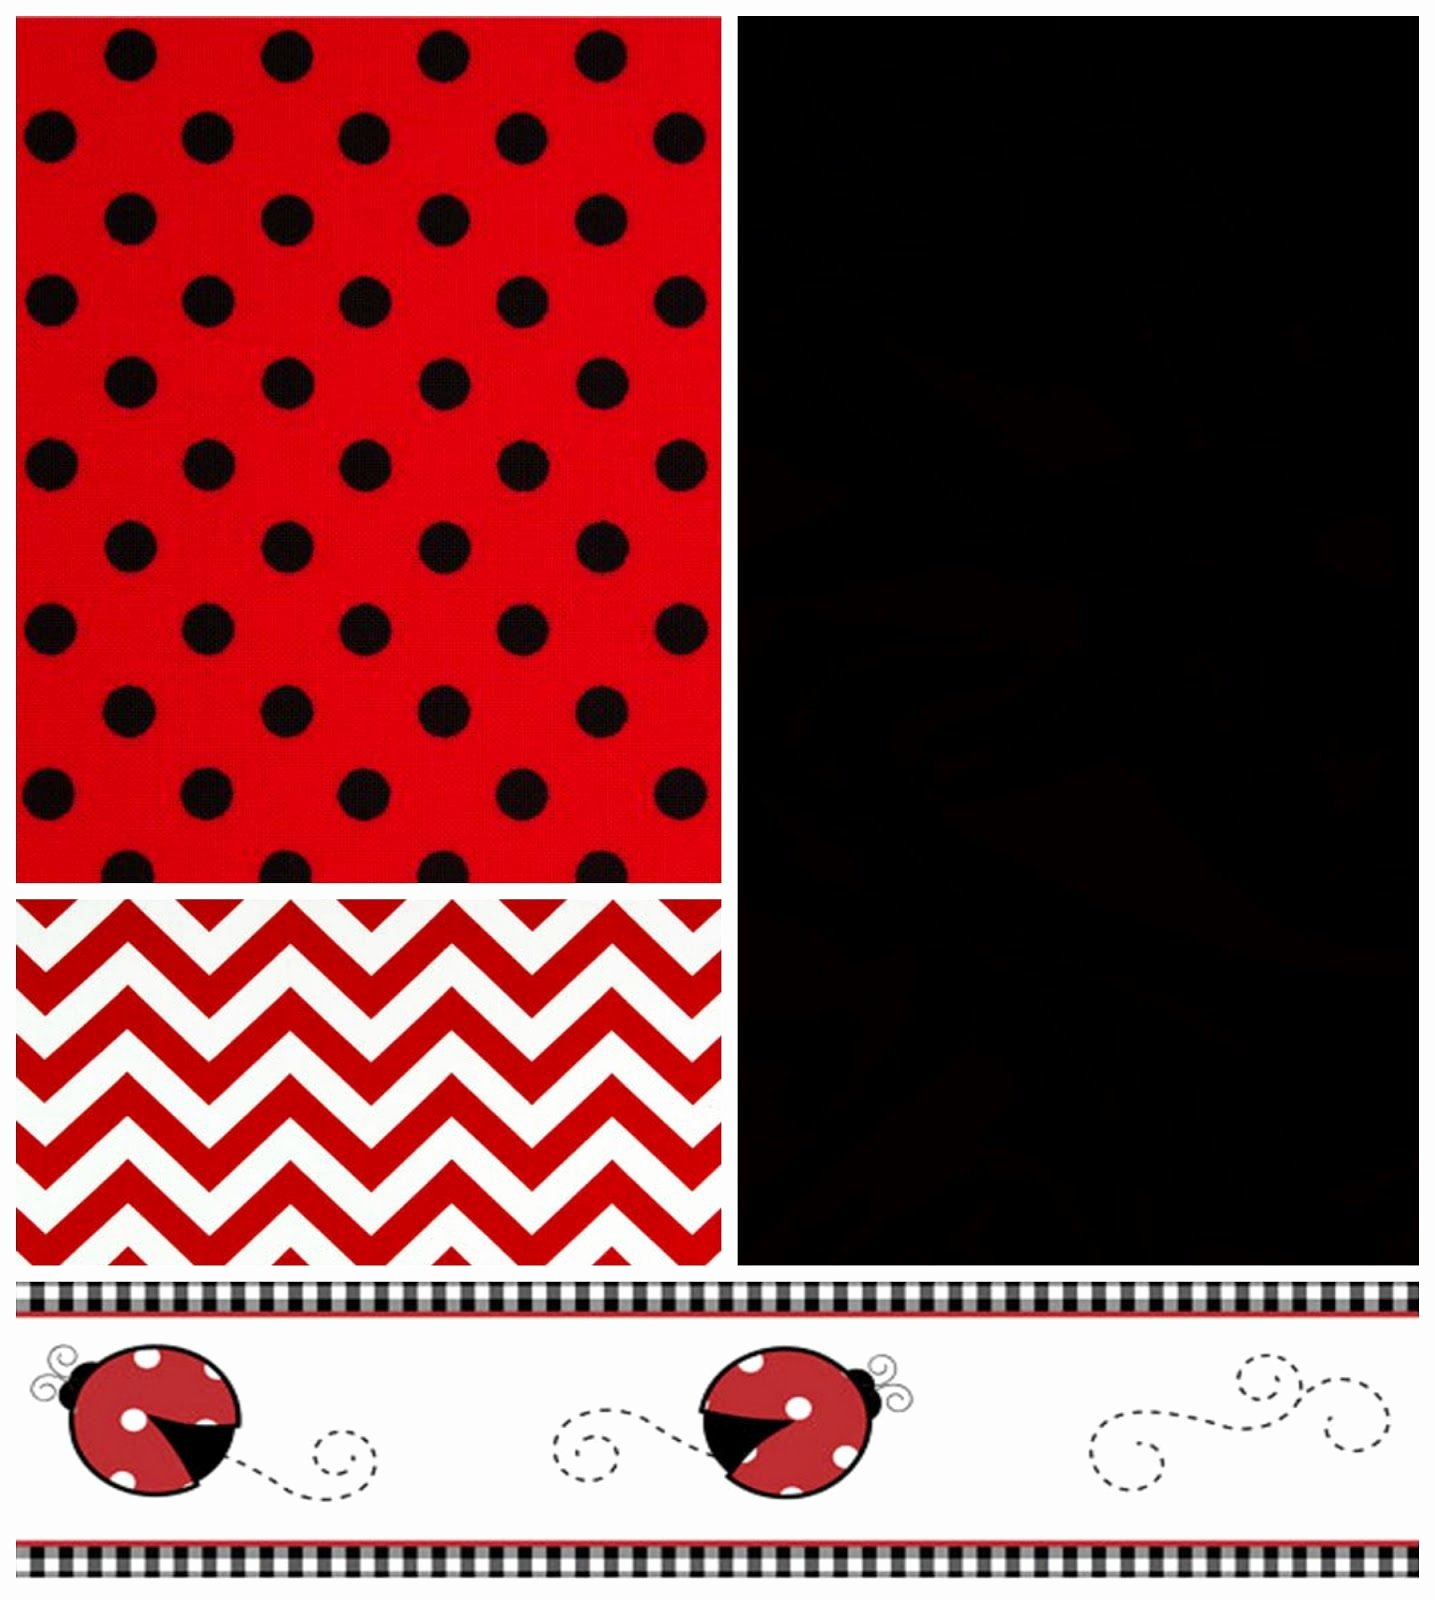 Ladybug Invitations Template Free Unique Free Ladybug Birthday Invitation Template Plus Learn How